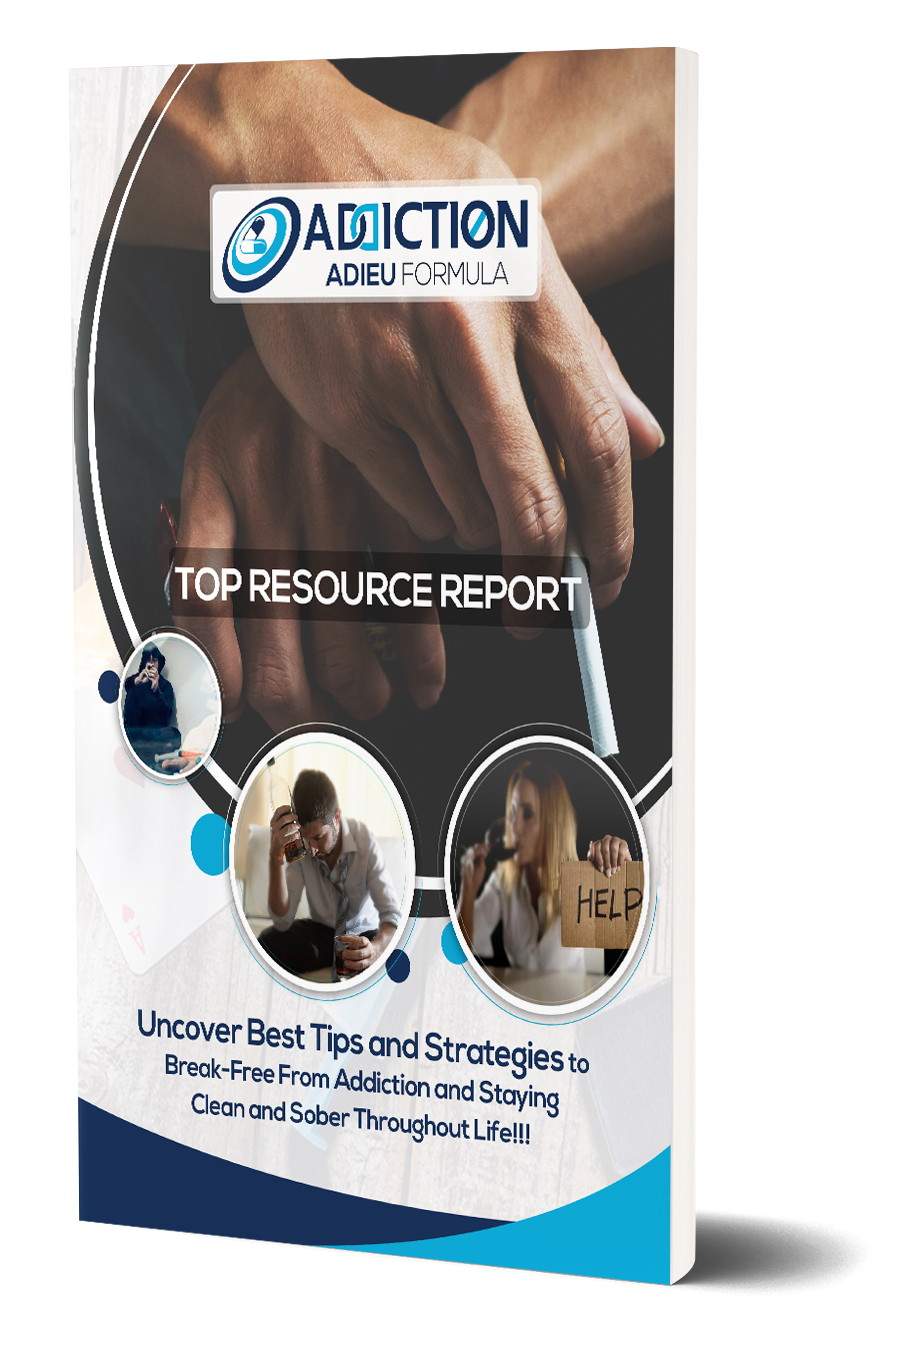 Addiction Adieu Formula Top Resource Rep